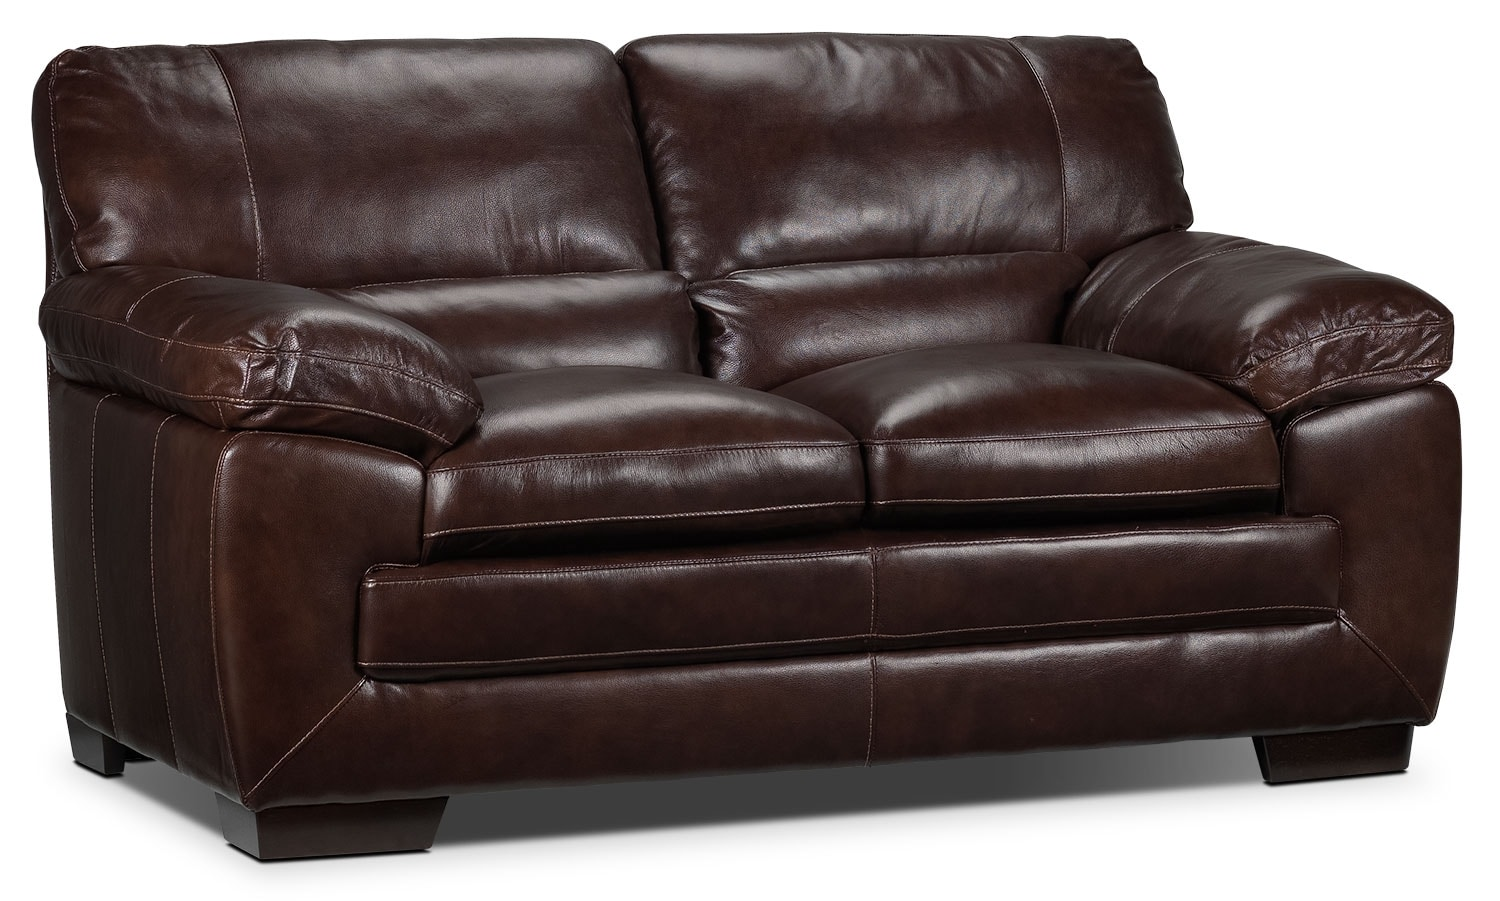 Living Room Furniture - Amarillo Loveseat - Brown